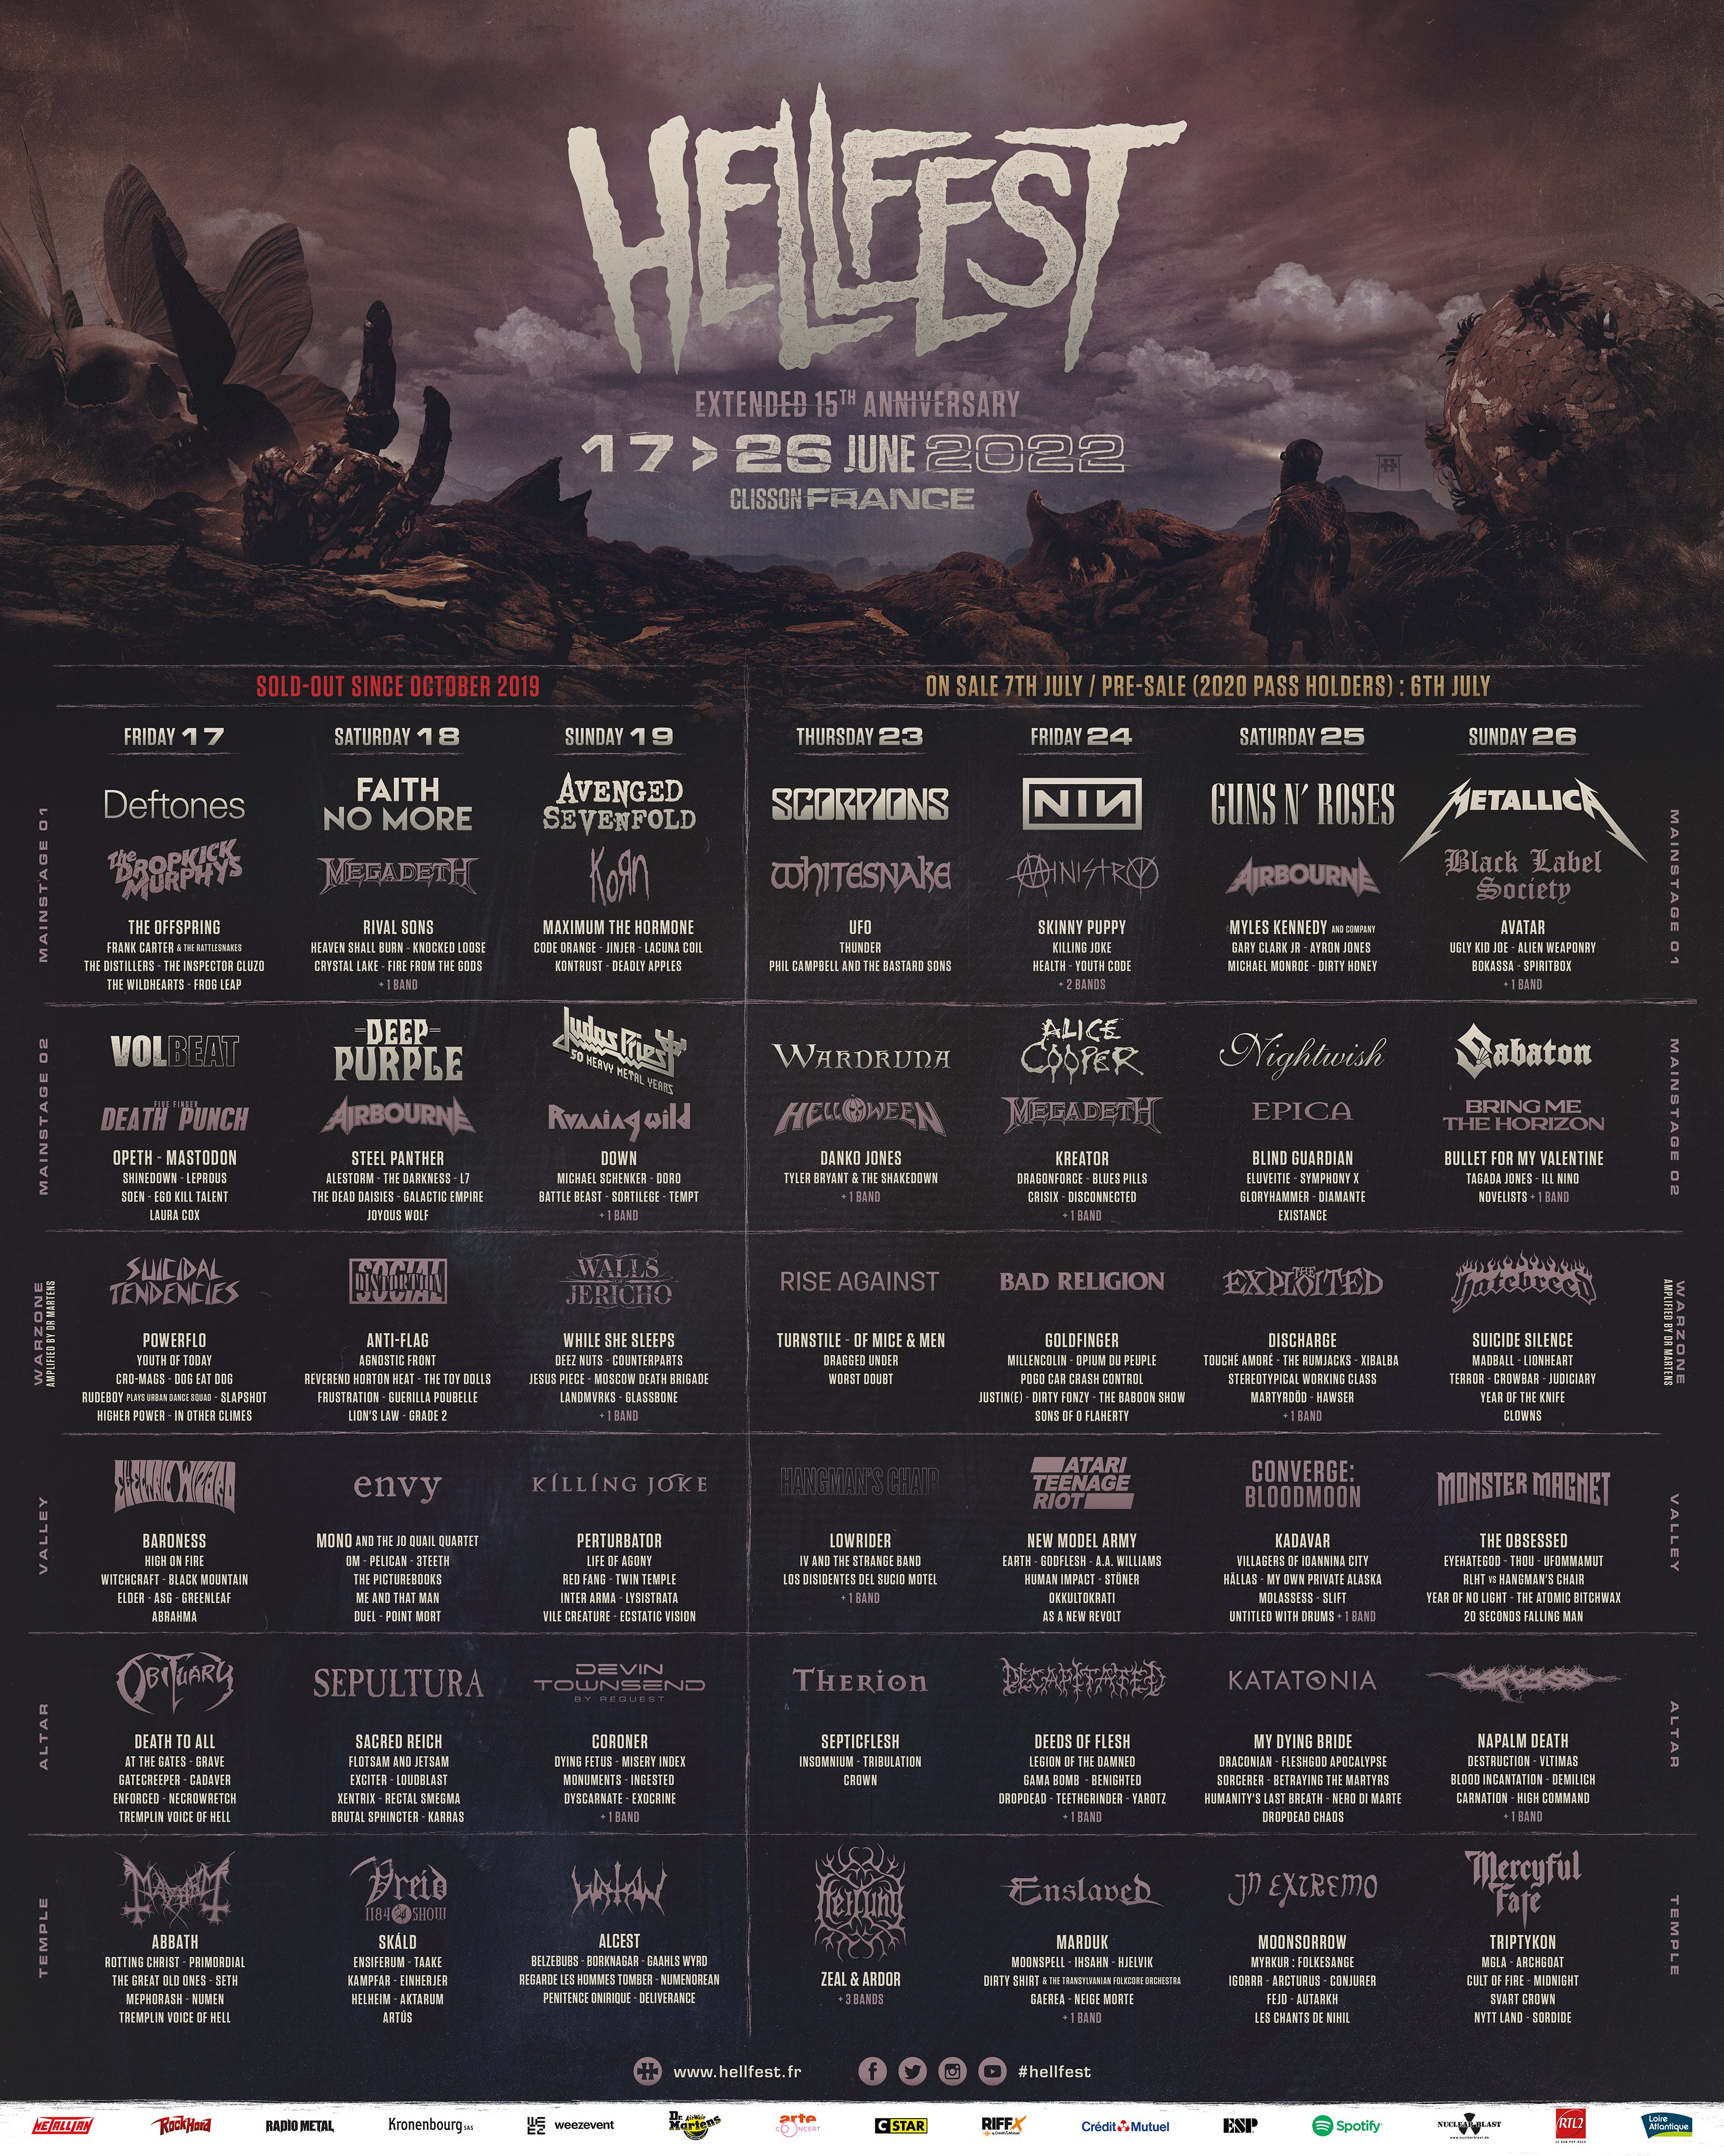 """Hellfest Open Air Festival on Twitter: """"🔥 Hell is Back🔥 17 > 26 June 2022 - Extended 15th Anniversary 7 Days / 350 Bands. https://t.co/rdNQXqA4Wy Once in a lifetime Celebration #hellfest https://t.co/8QAC9QSUN8"""" / Twitter"""